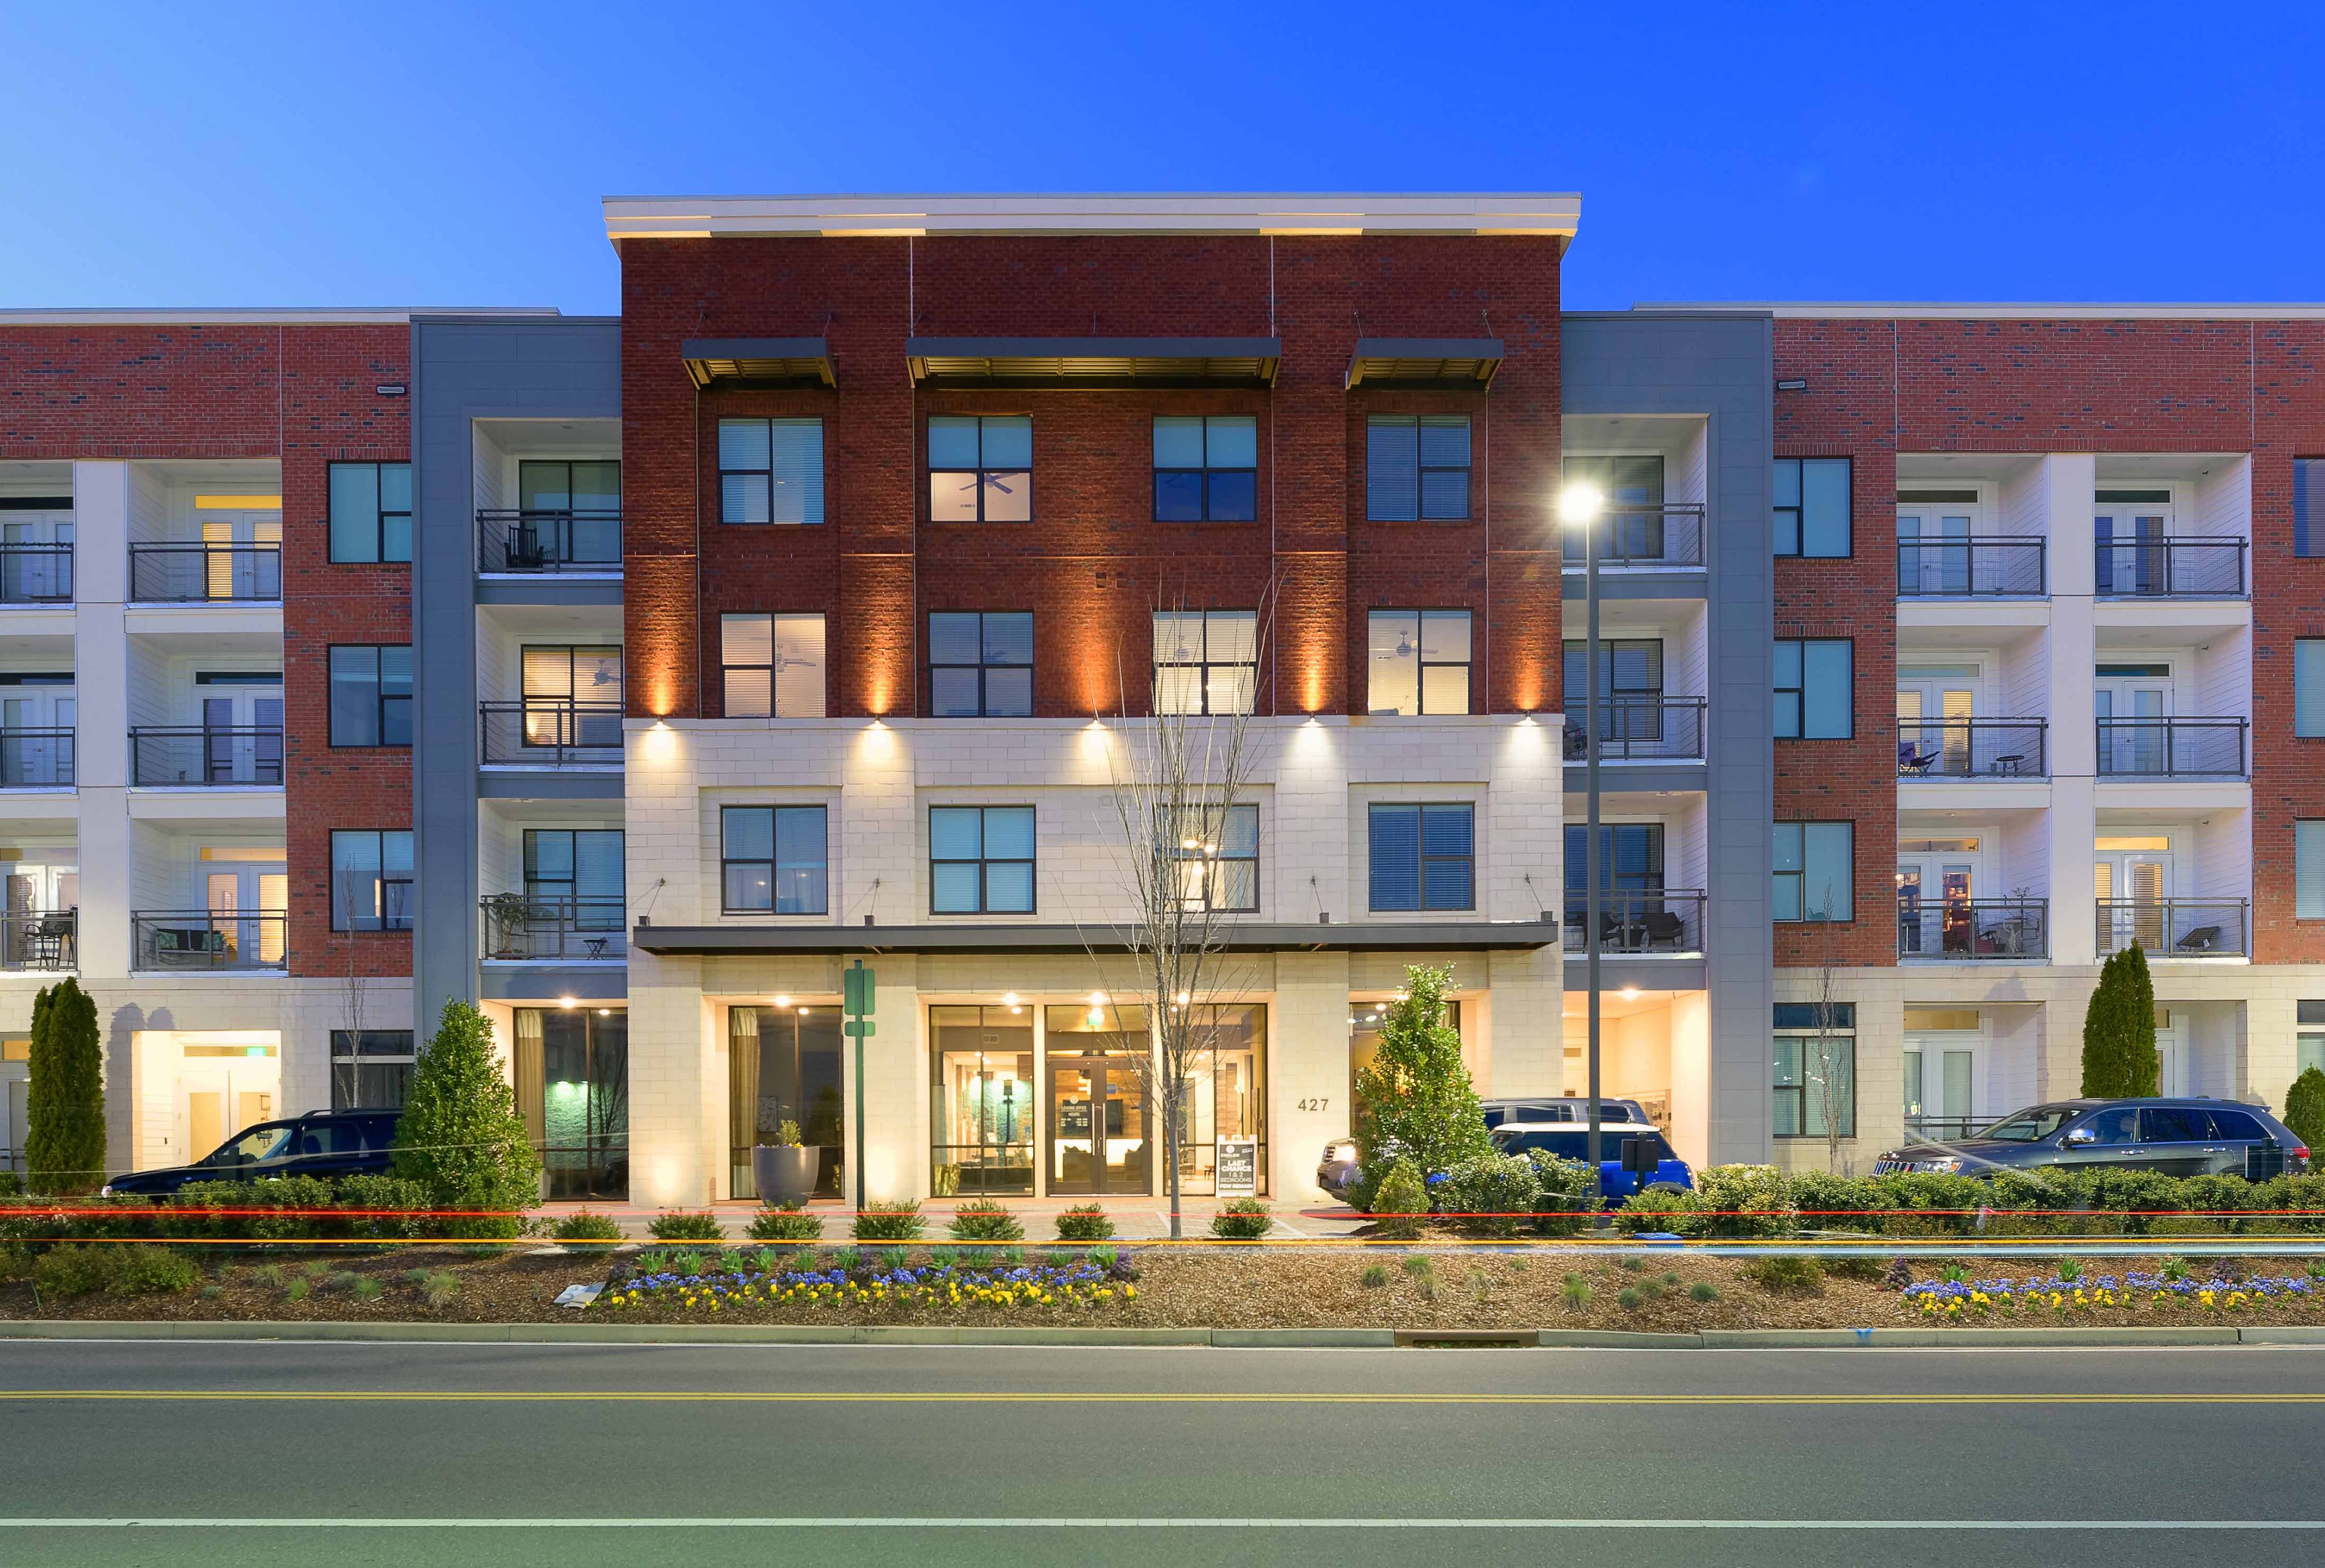 California real estate investment firm pays $88 million for apartment complex in Franklin